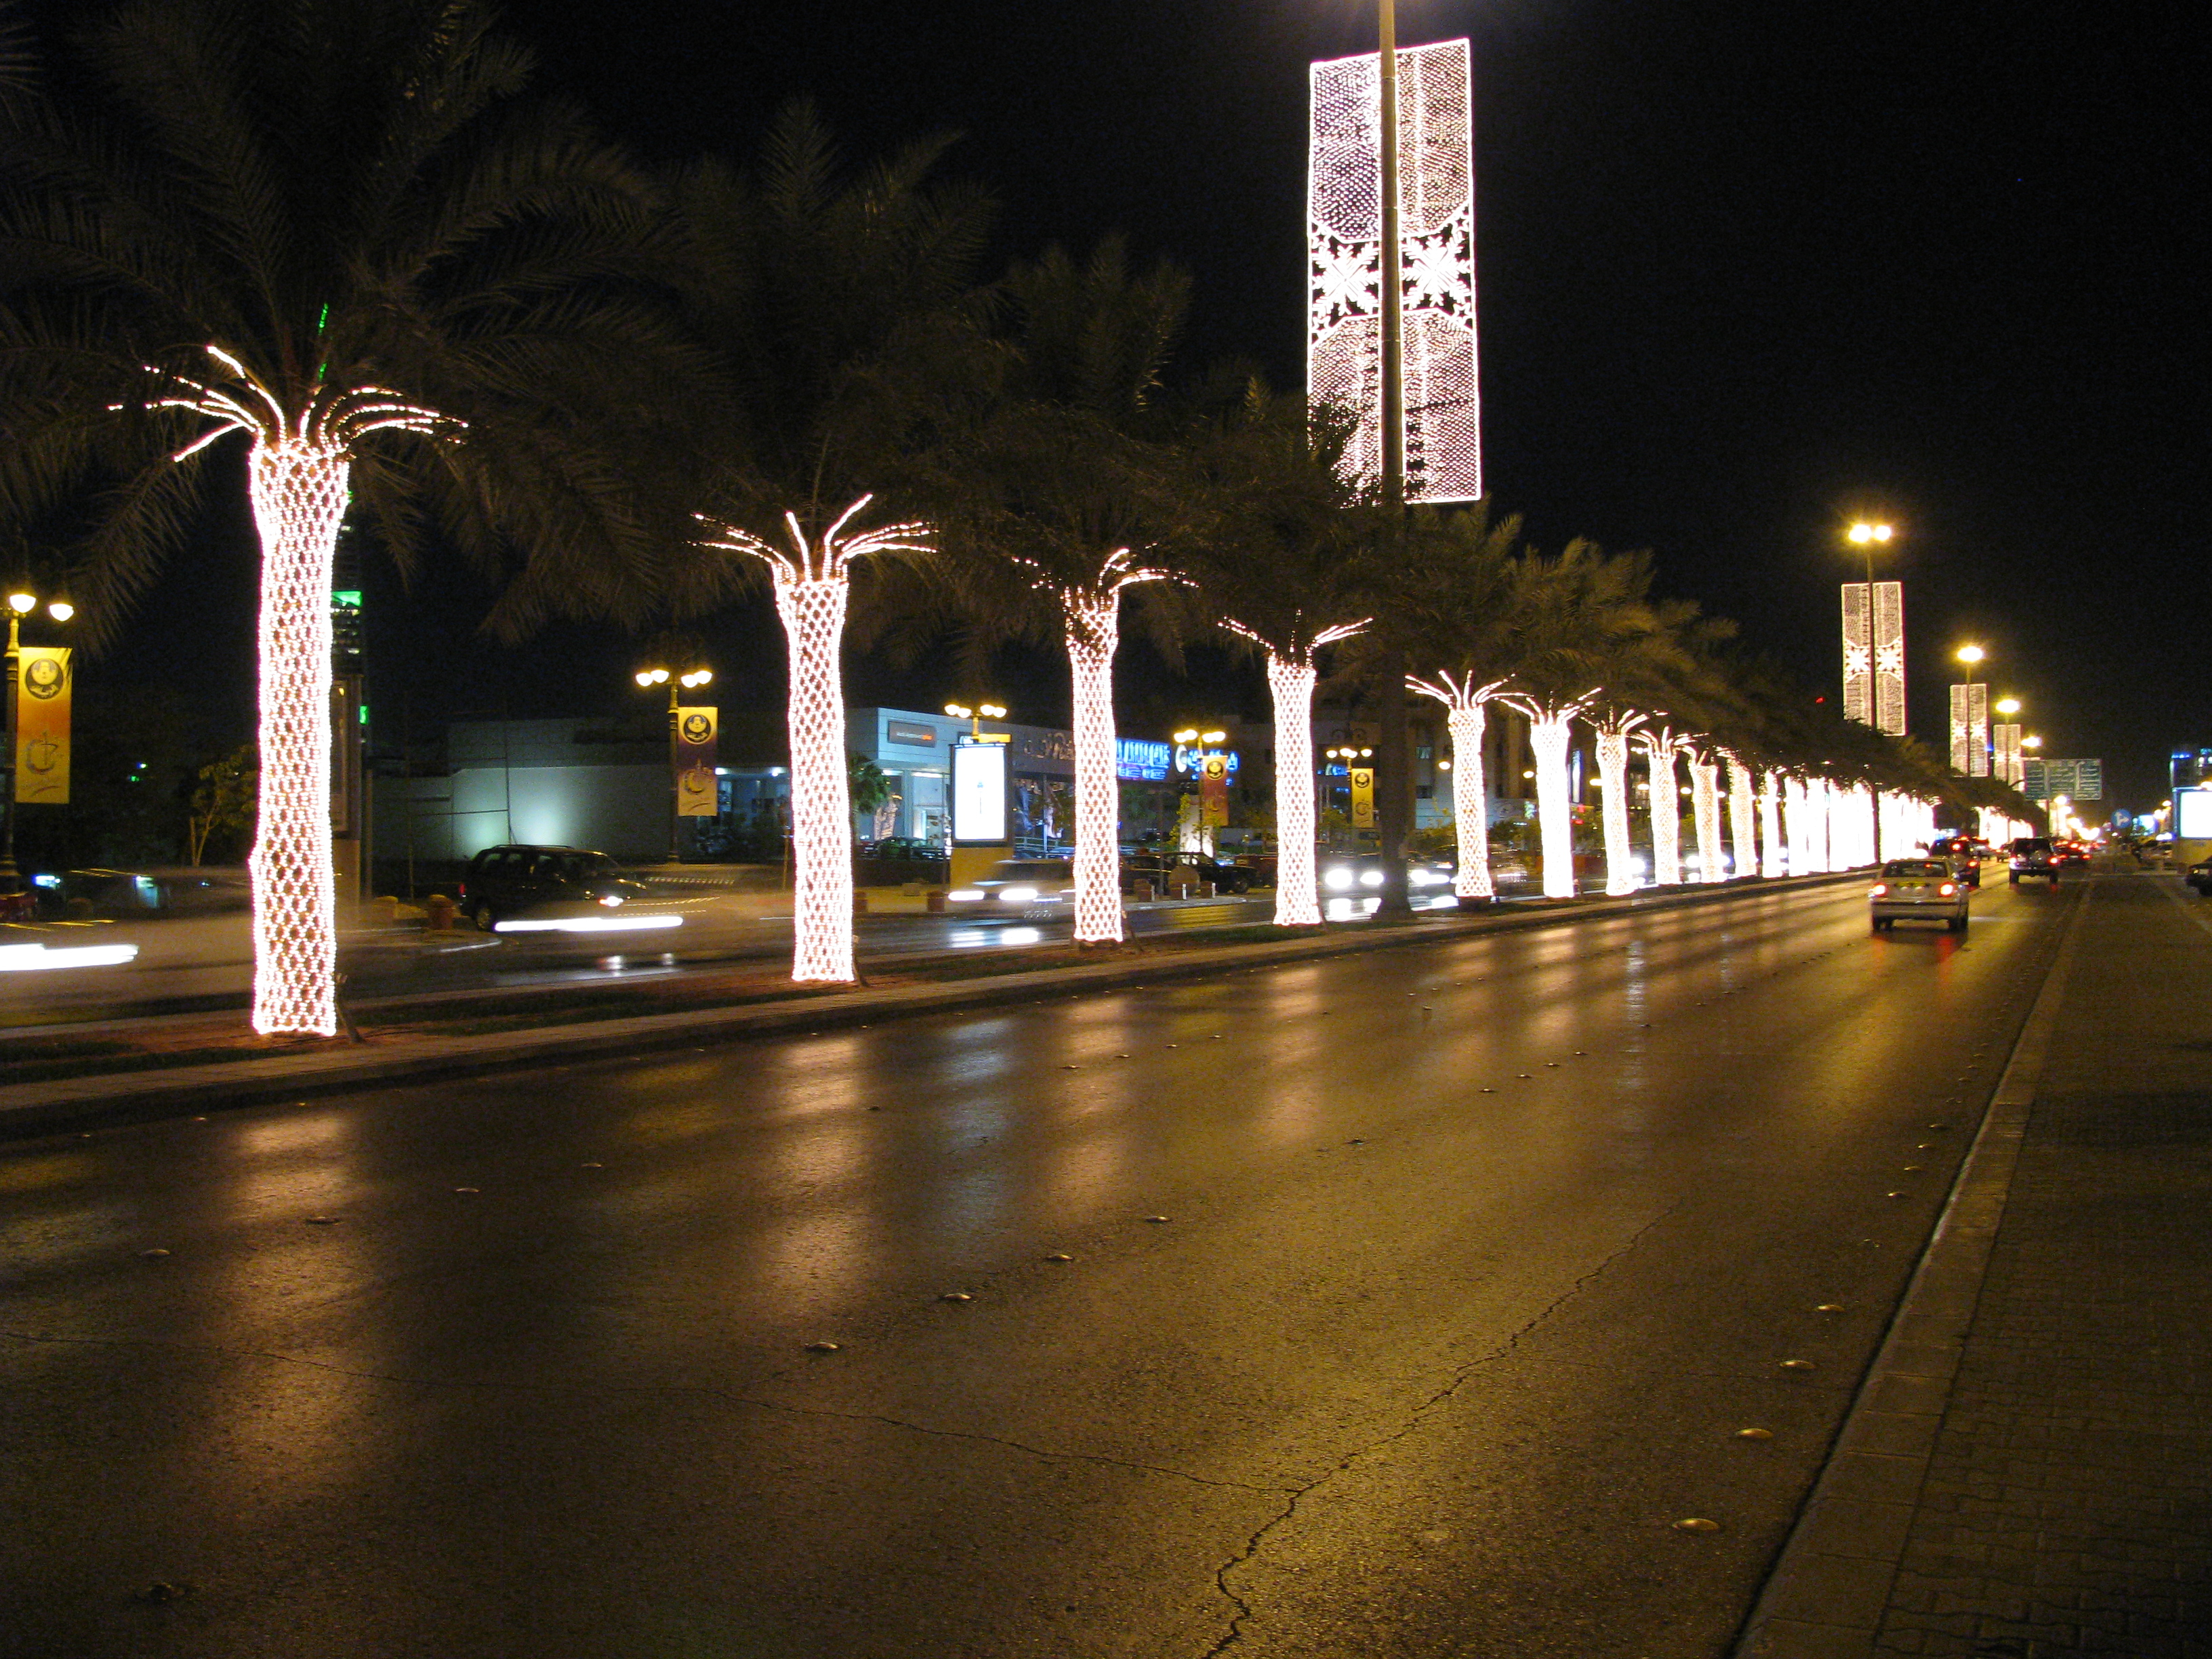 Explore the plans for Riyadh's public transportation at Riyadh Public Transport Visitor Centre. Source: Wikimedia